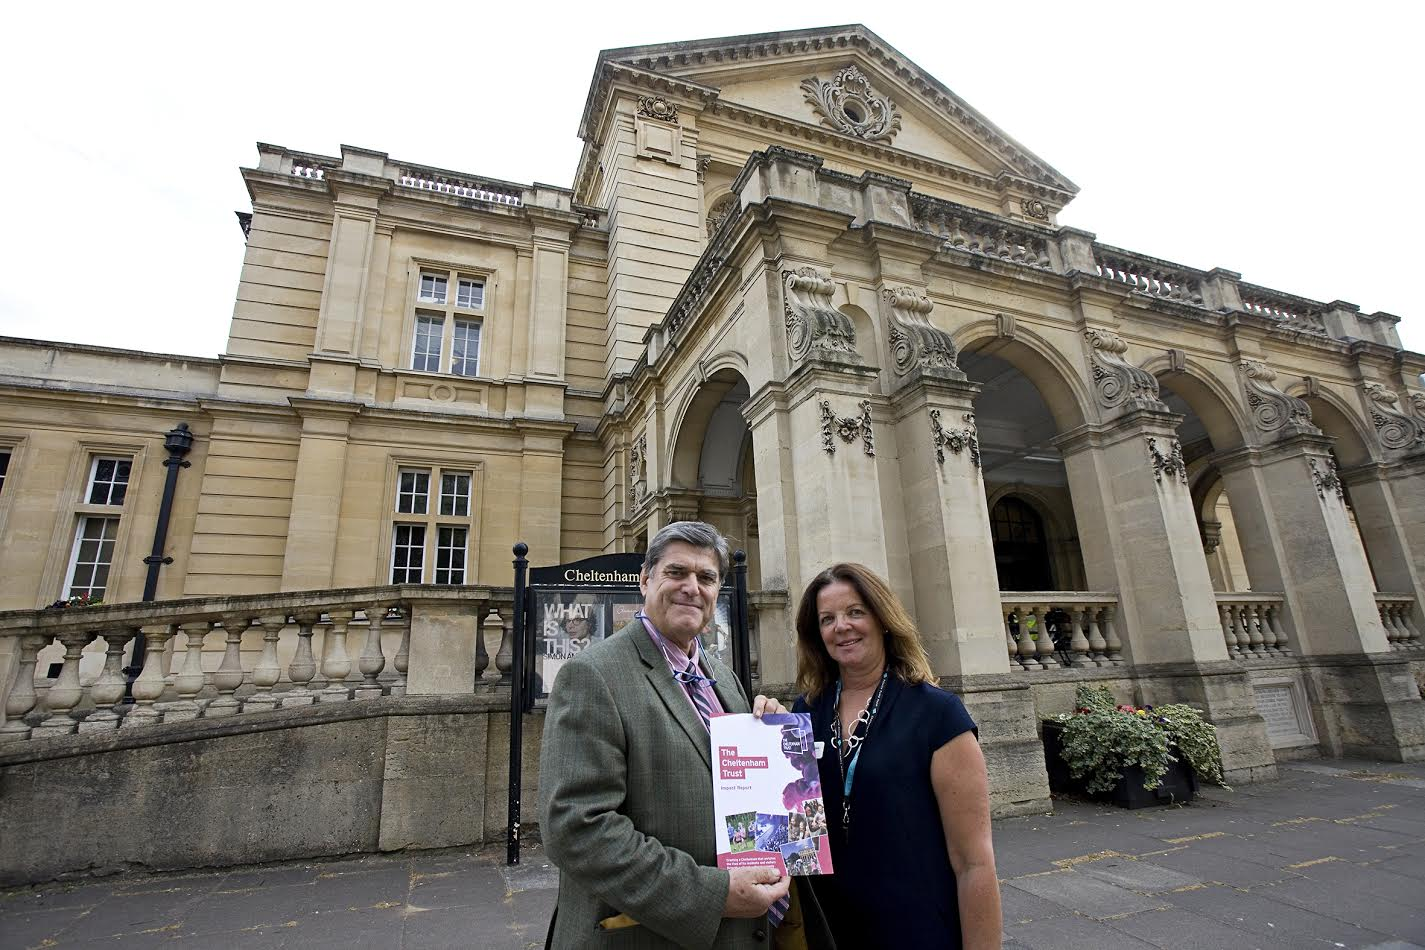 Peter Harkness, chairman of Cheltenham Trust, and Julie Finch, CEO, presenting the Cheltenham Trust Impact Report at Cheltenham Town Hall.